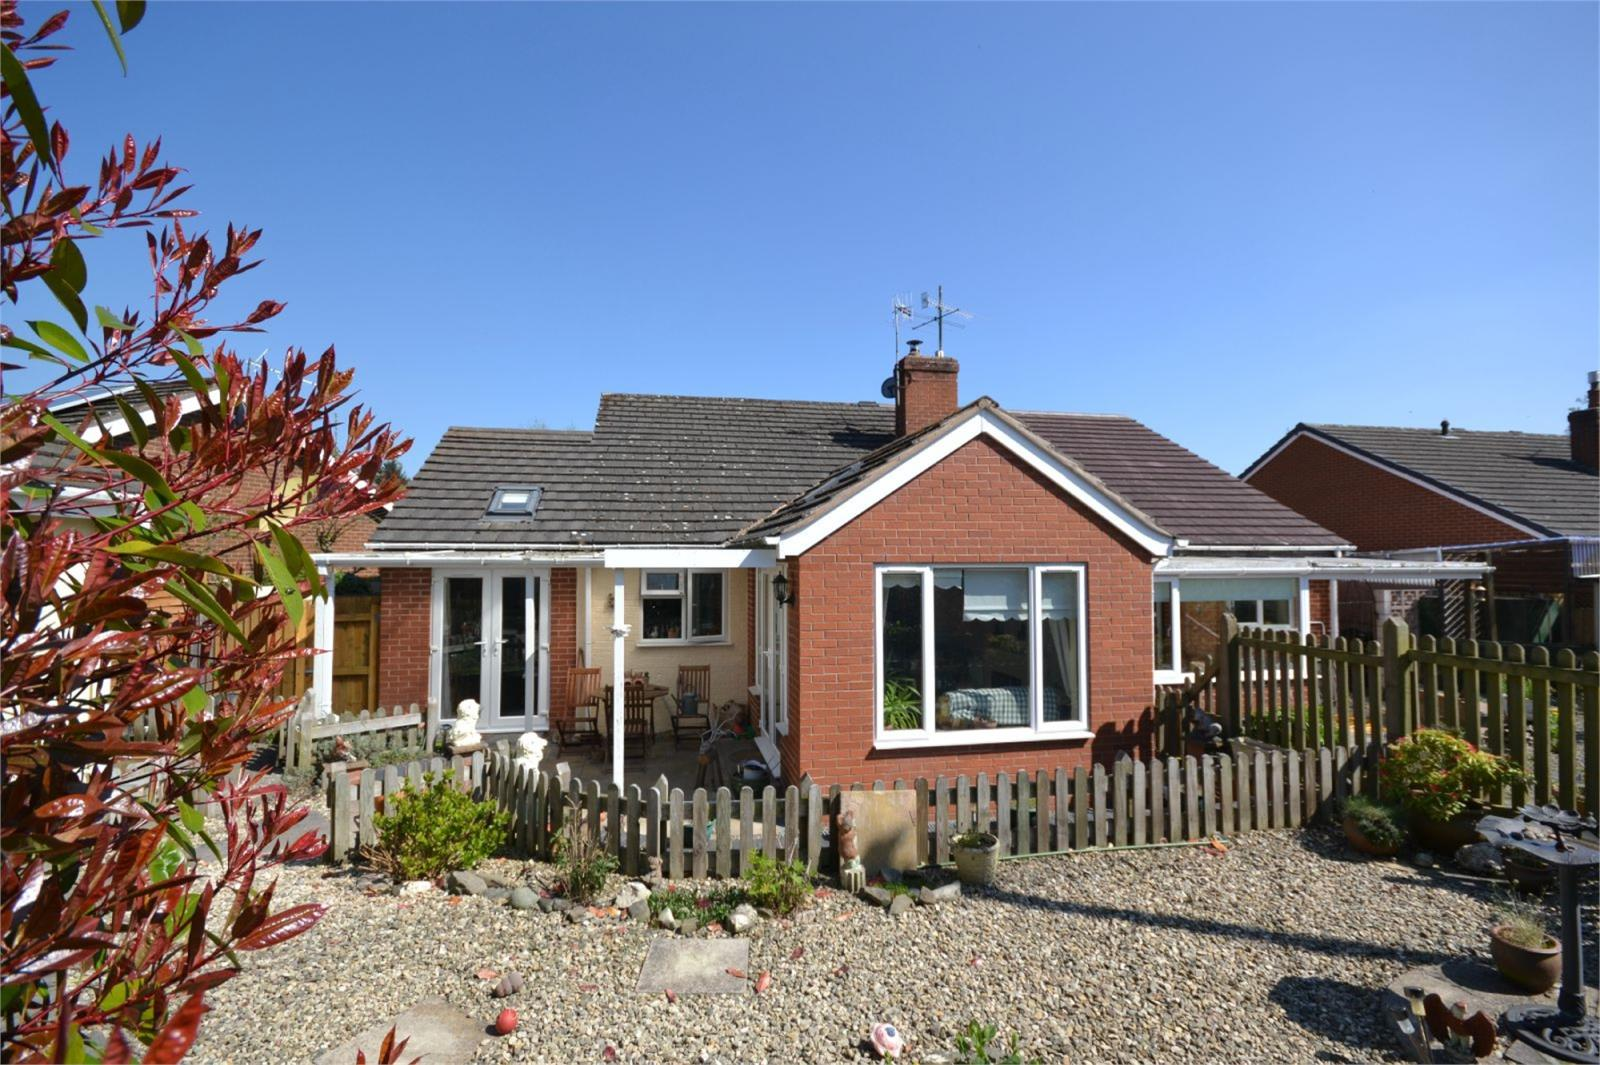 2 Bedrooms Semi Detached Bungalow for sale in 4 Dog Kennel Lane, Bucknell, Shropshire, SY7